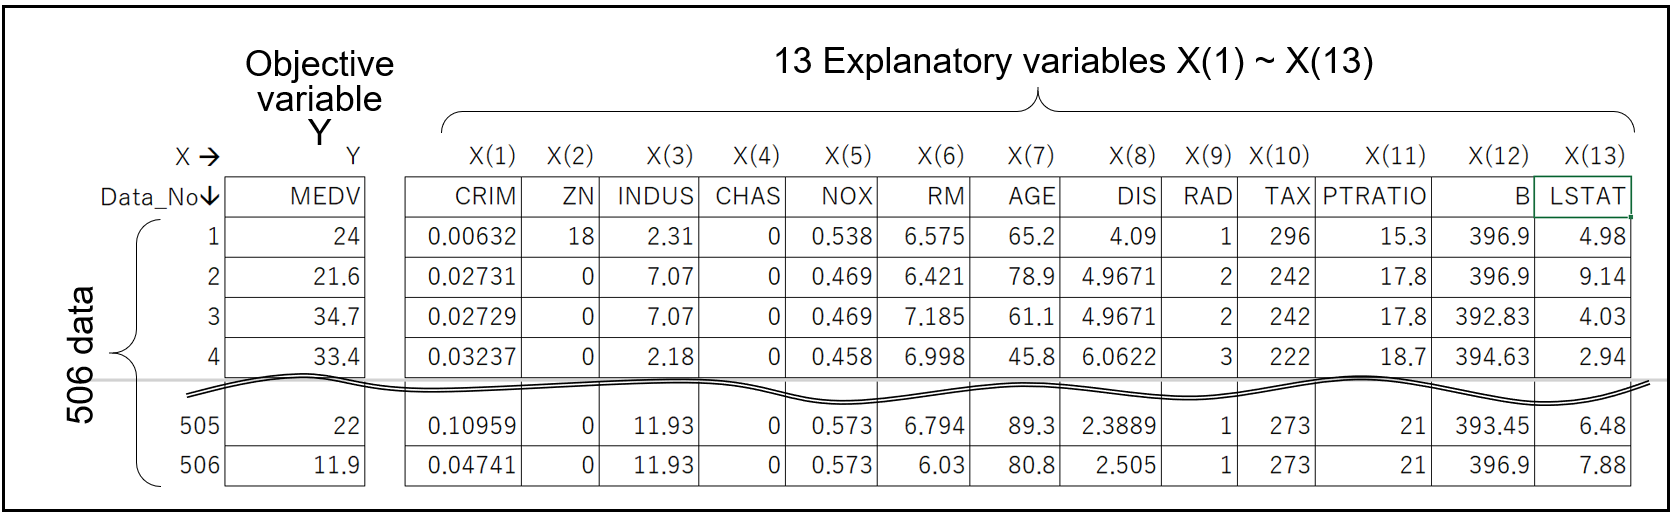 A table showing the values for each of the 13 different explanatory variables.